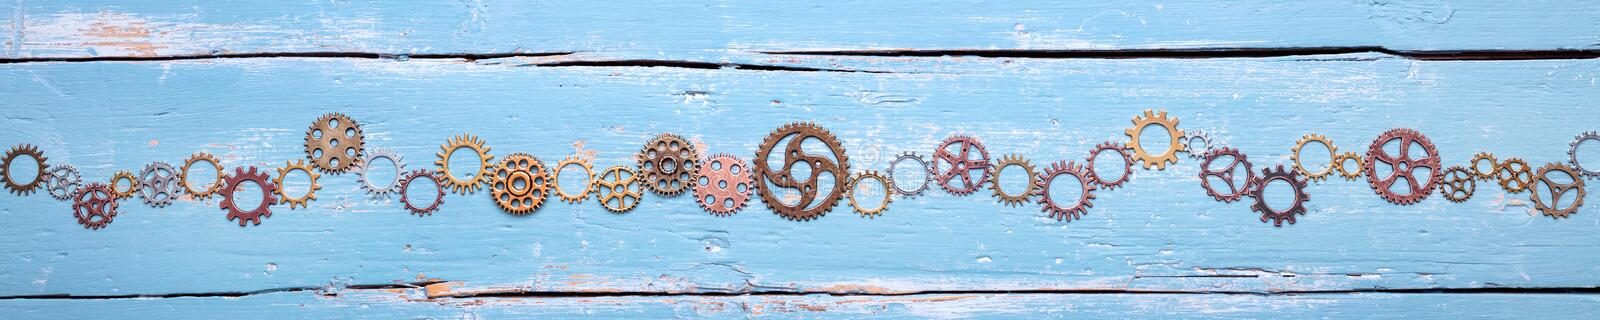 Banner, gears on blue background, concept teamwork and cohesion royalty free stock photos